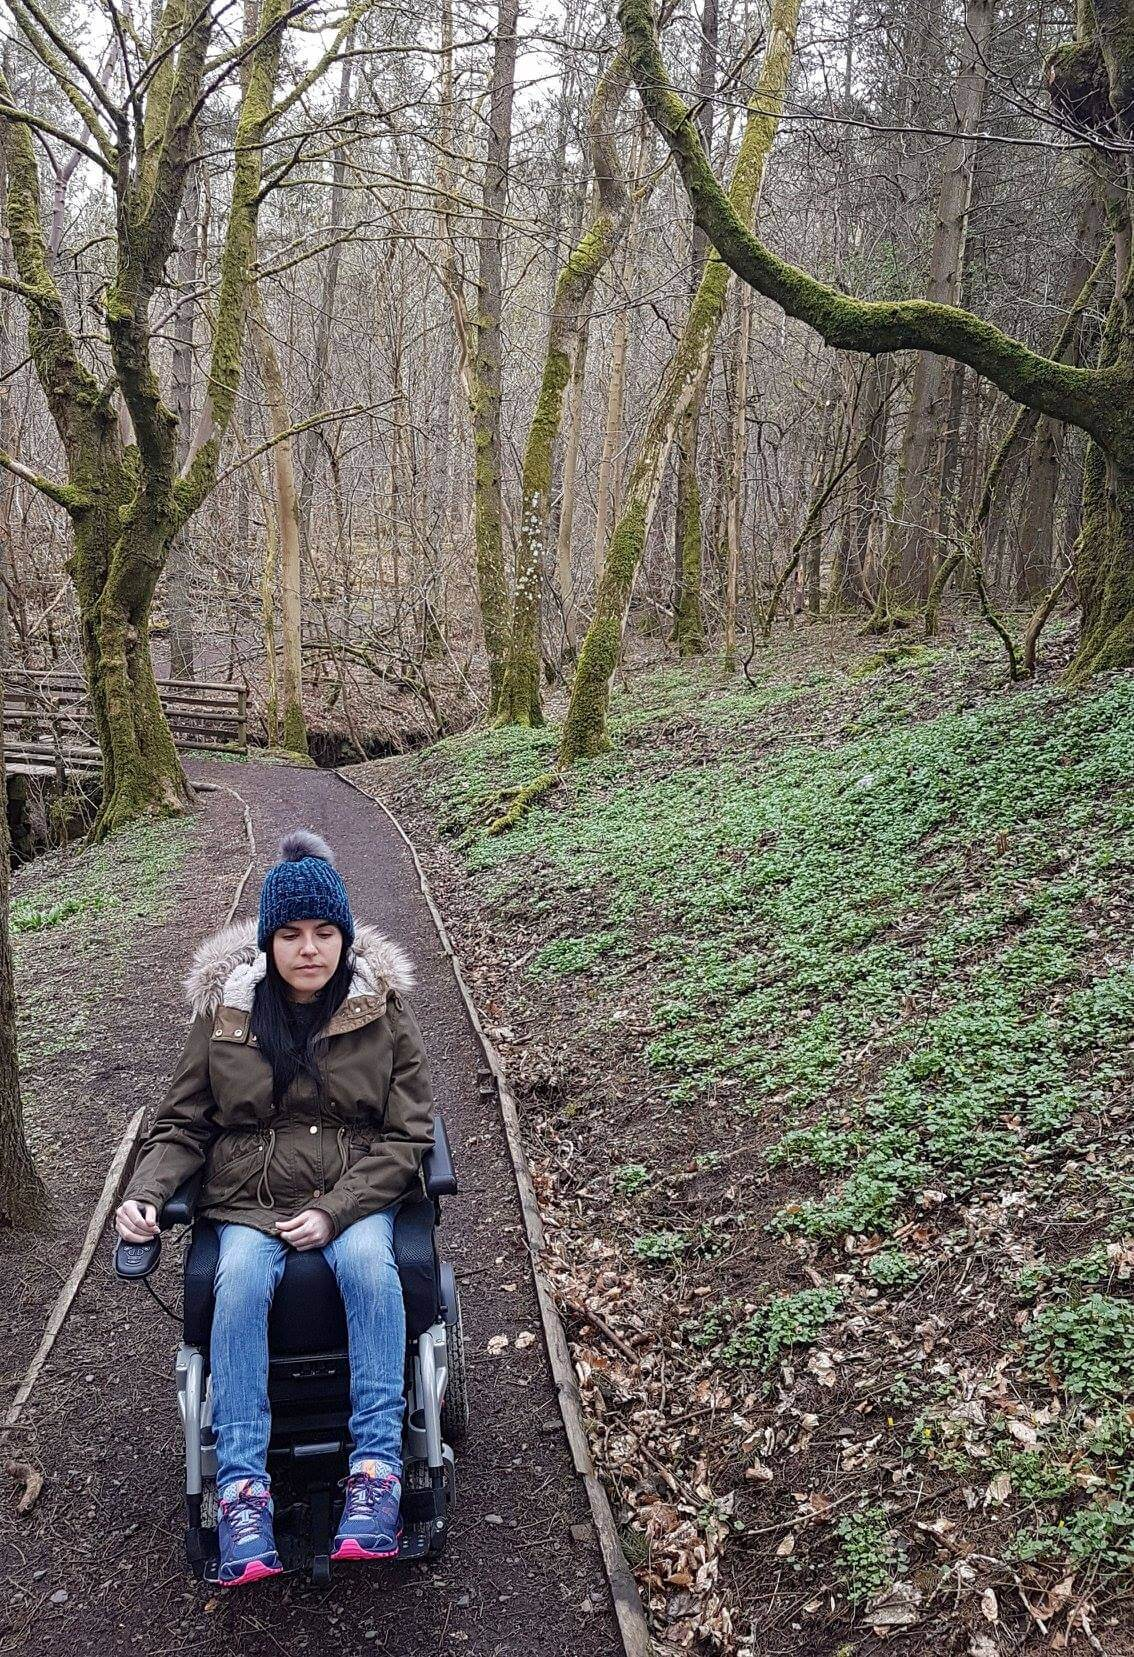 Emma in her powered wheelchair strolling through Calderglen Country Park.